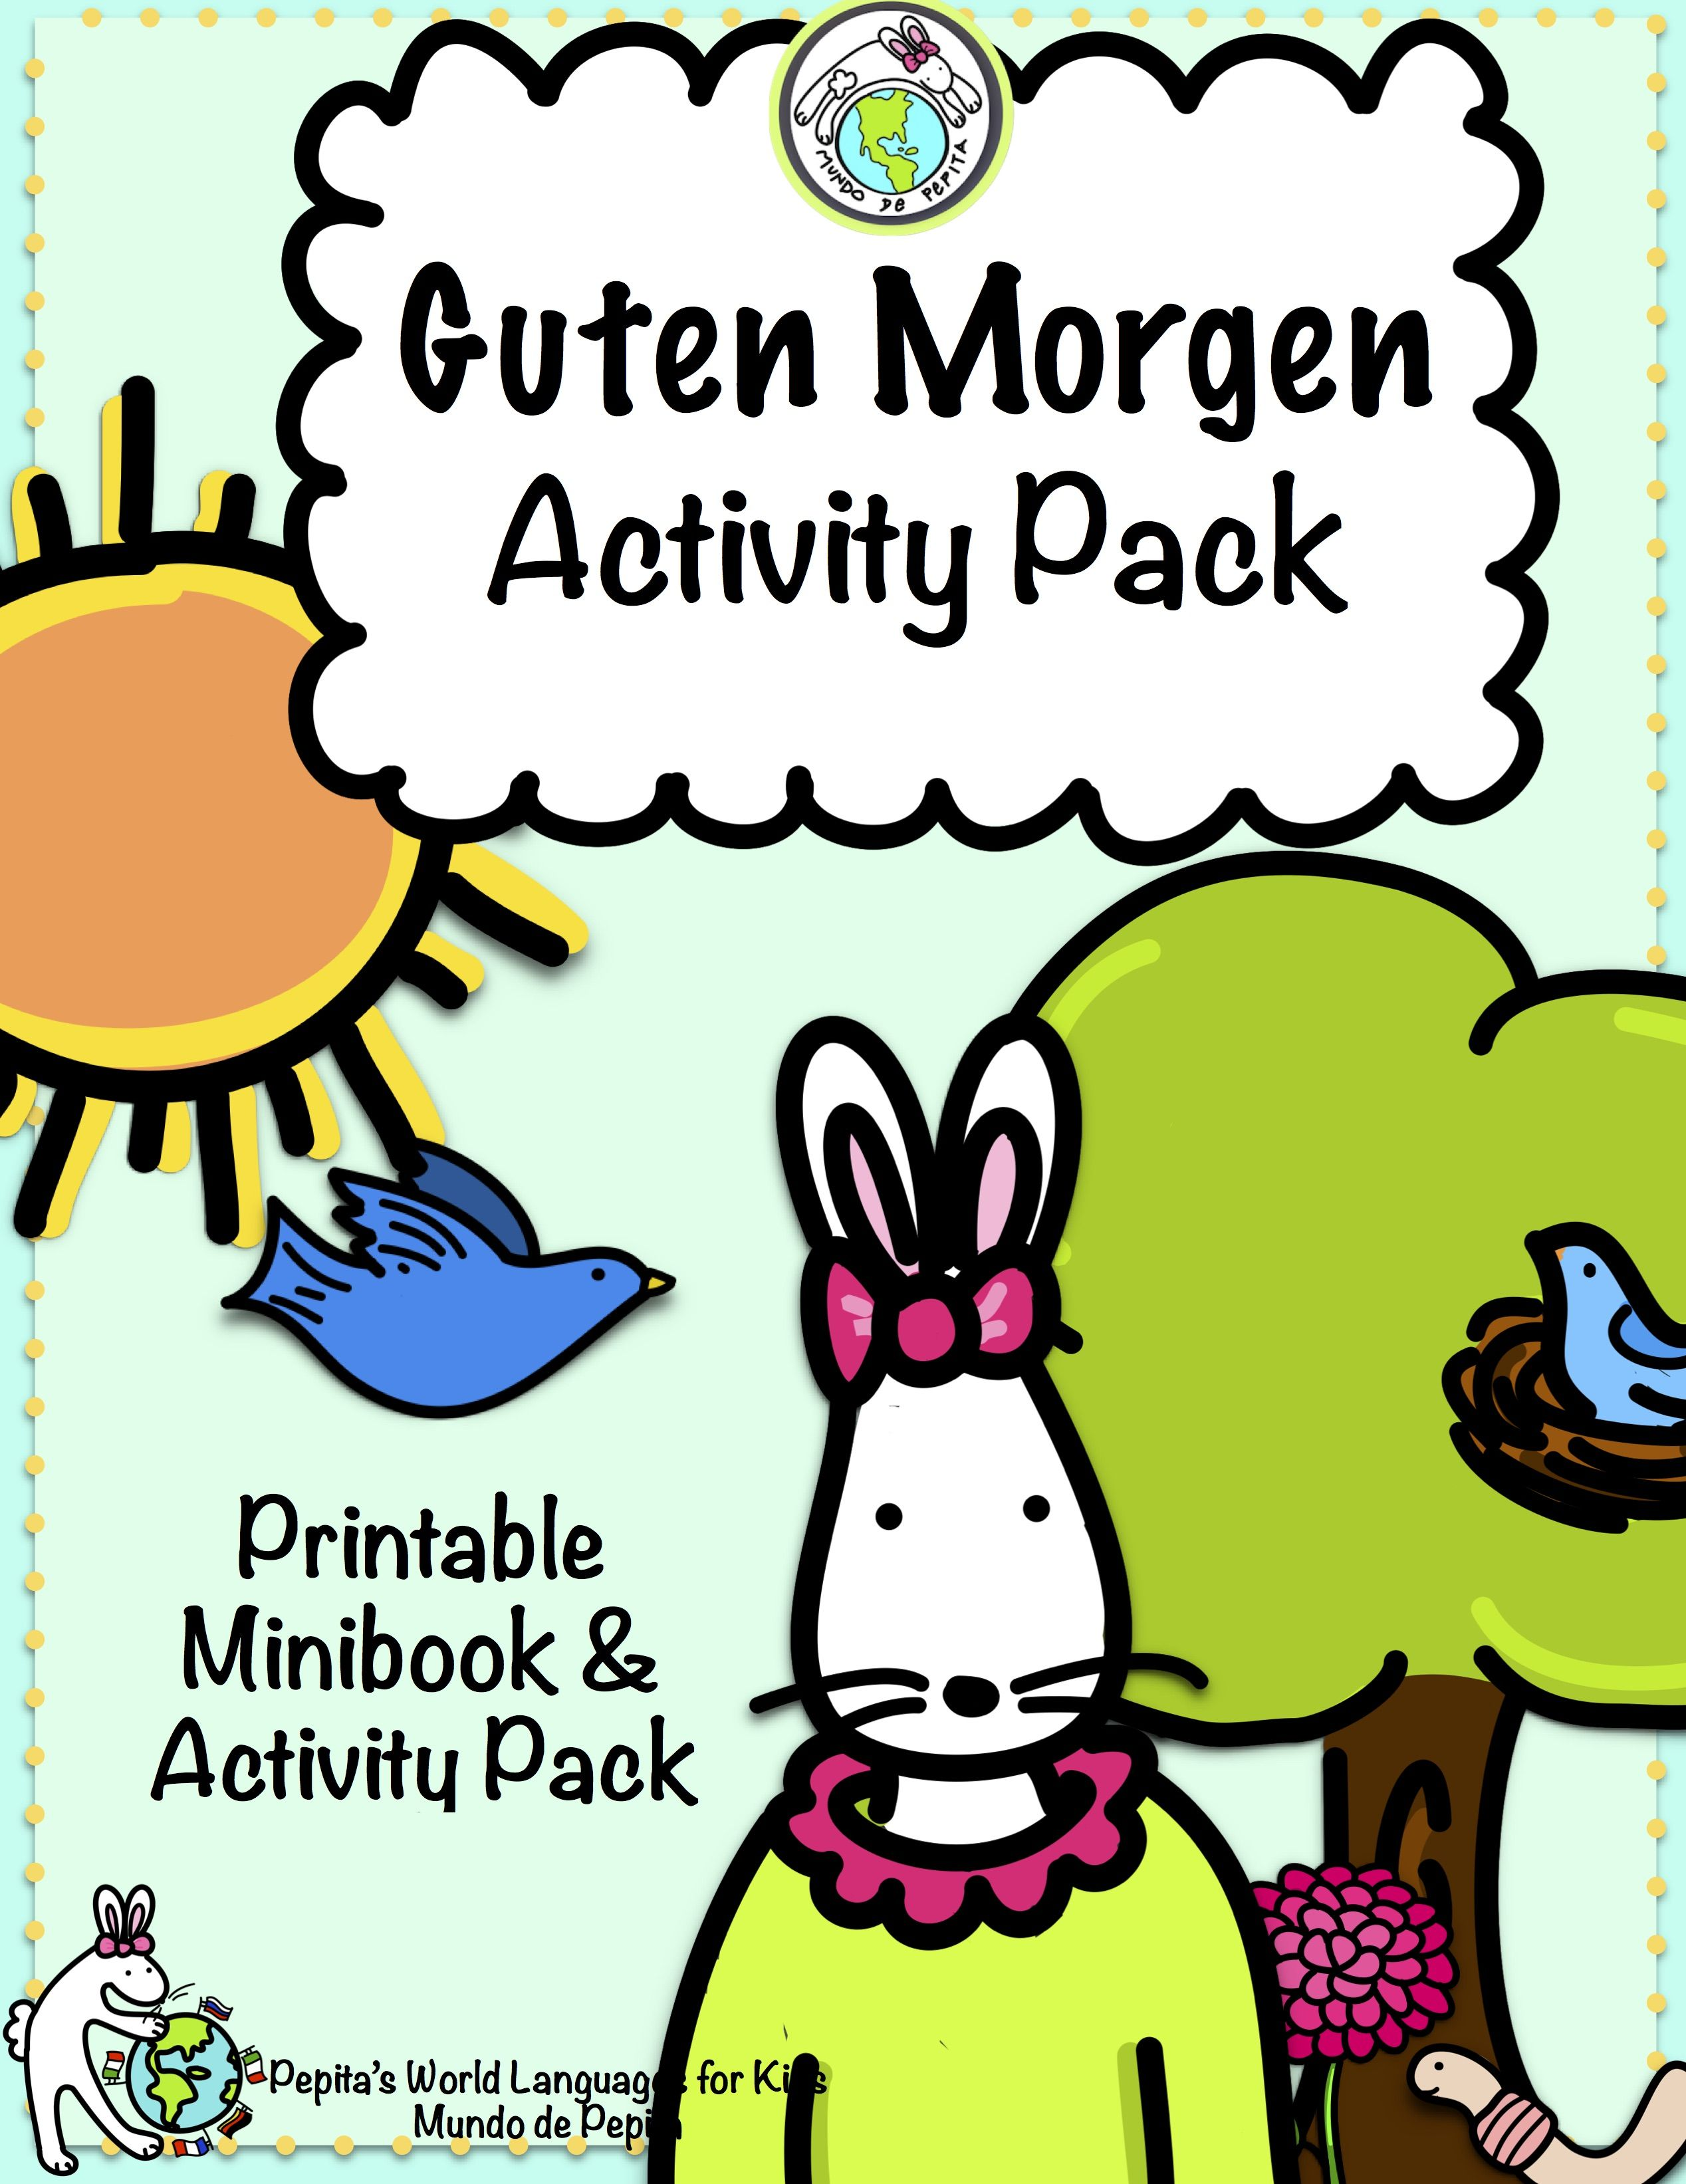 Guten morgen greetings minibook and activity pack in german german to teach greetings in context in german perfect for preschool and elementary classes pepitas world languages for kids a division of mundo de pepita m4hsunfo